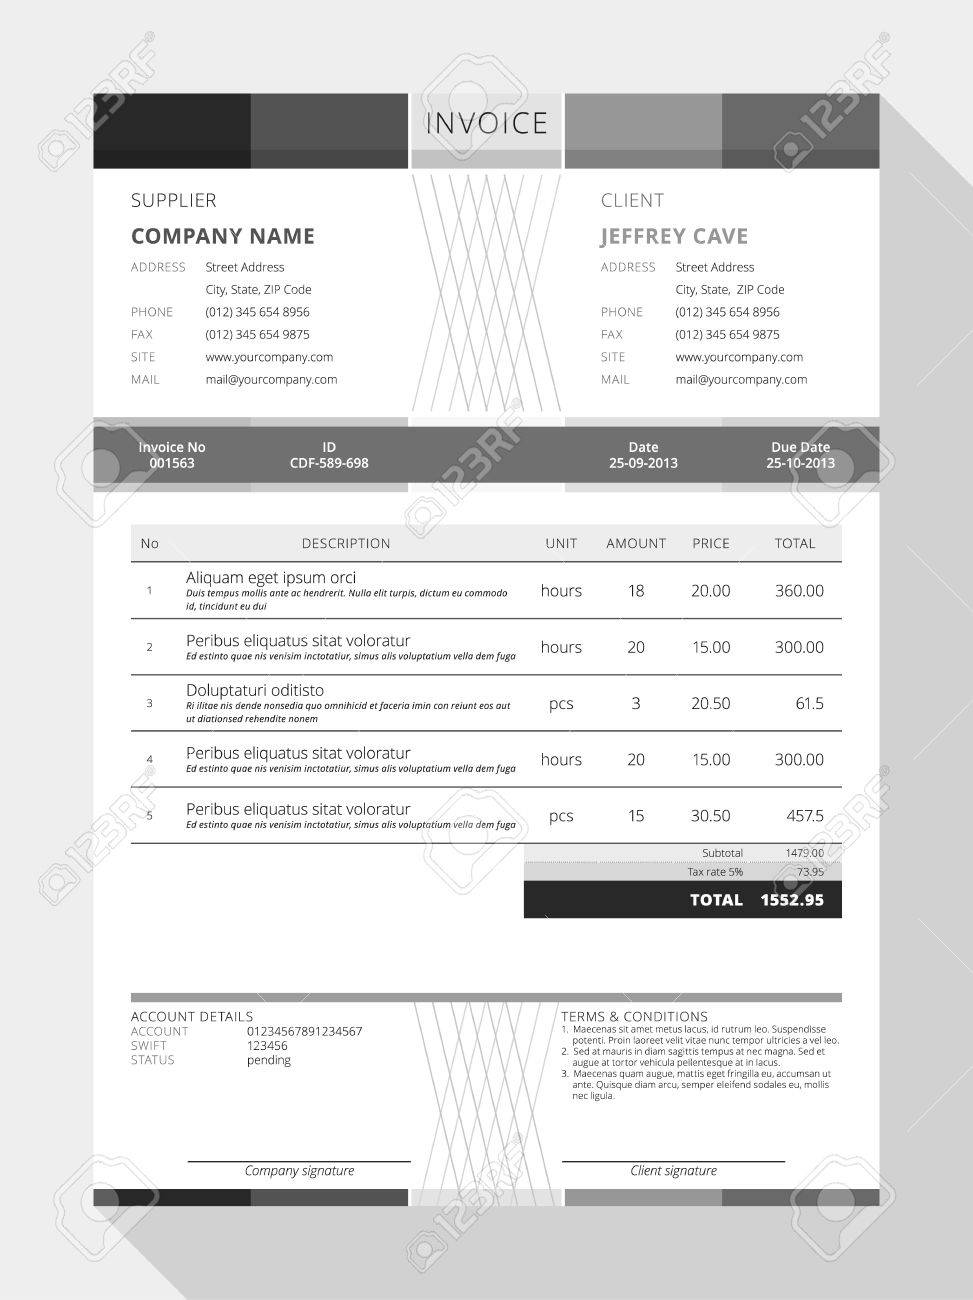 Carsforlessus  Personable Design An Invoice  Professional Graphic Design Invoice  With Great Vector Customizable Invoice Form Template Design Vector   Design An Invoice With Cute Receipt Printer Ipad Also Rent Receipt Format Download In Addition Rental Bond Receipt Template And Sample Money Receipt As Well As I Confirm Receipt Of Your Email Additionally Format Of Receipt Of Payment From Happytomco With Carsforlessus  Great Design An Invoice  Professional Graphic Design Invoice  With Cute Vector Customizable Invoice Form Template Design Vector   Design An Invoice And Personable Receipt Printer Ipad Also Rent Receipt Format Download In Addition Rental Bond Receipt Template From Happytomco